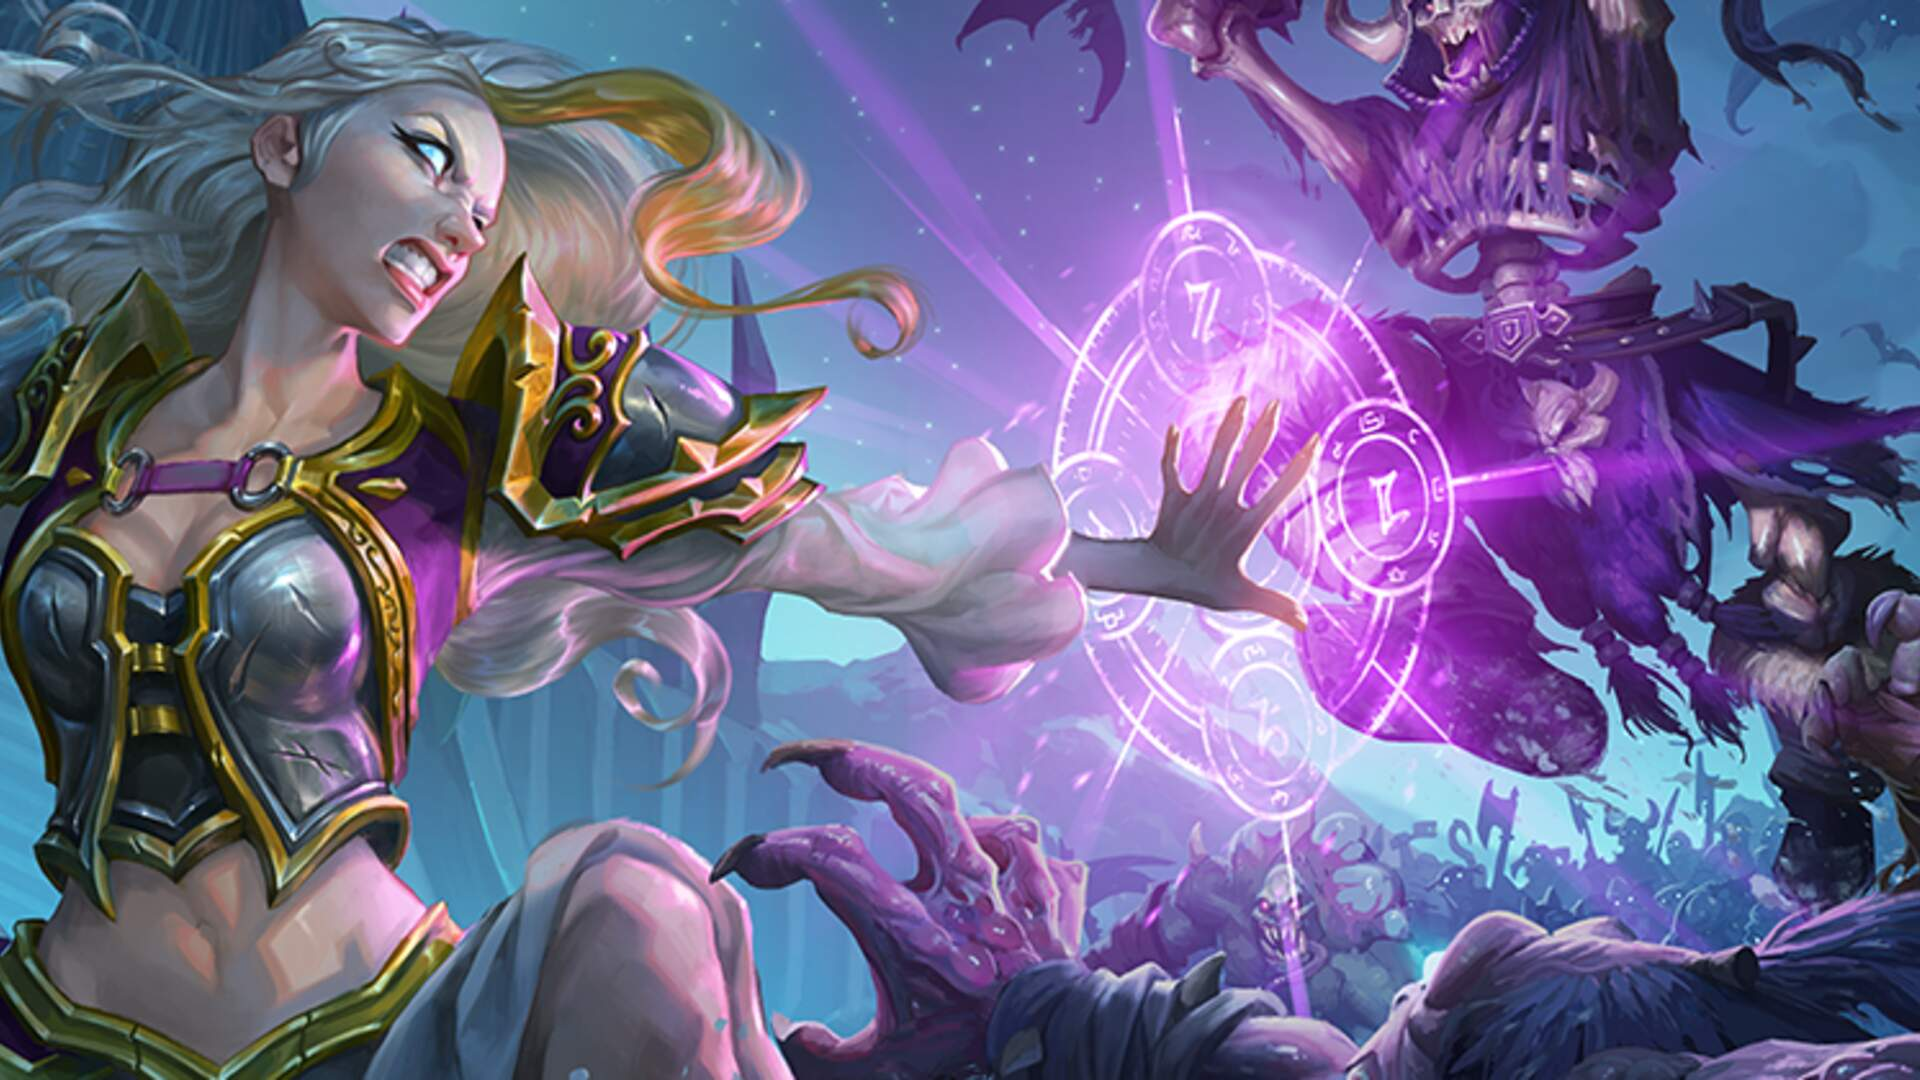 Hearthstone's Newest Expansion, Knights of the Frozen Throne, Adds New Hero Cards, Lifesteal, and Free Missions